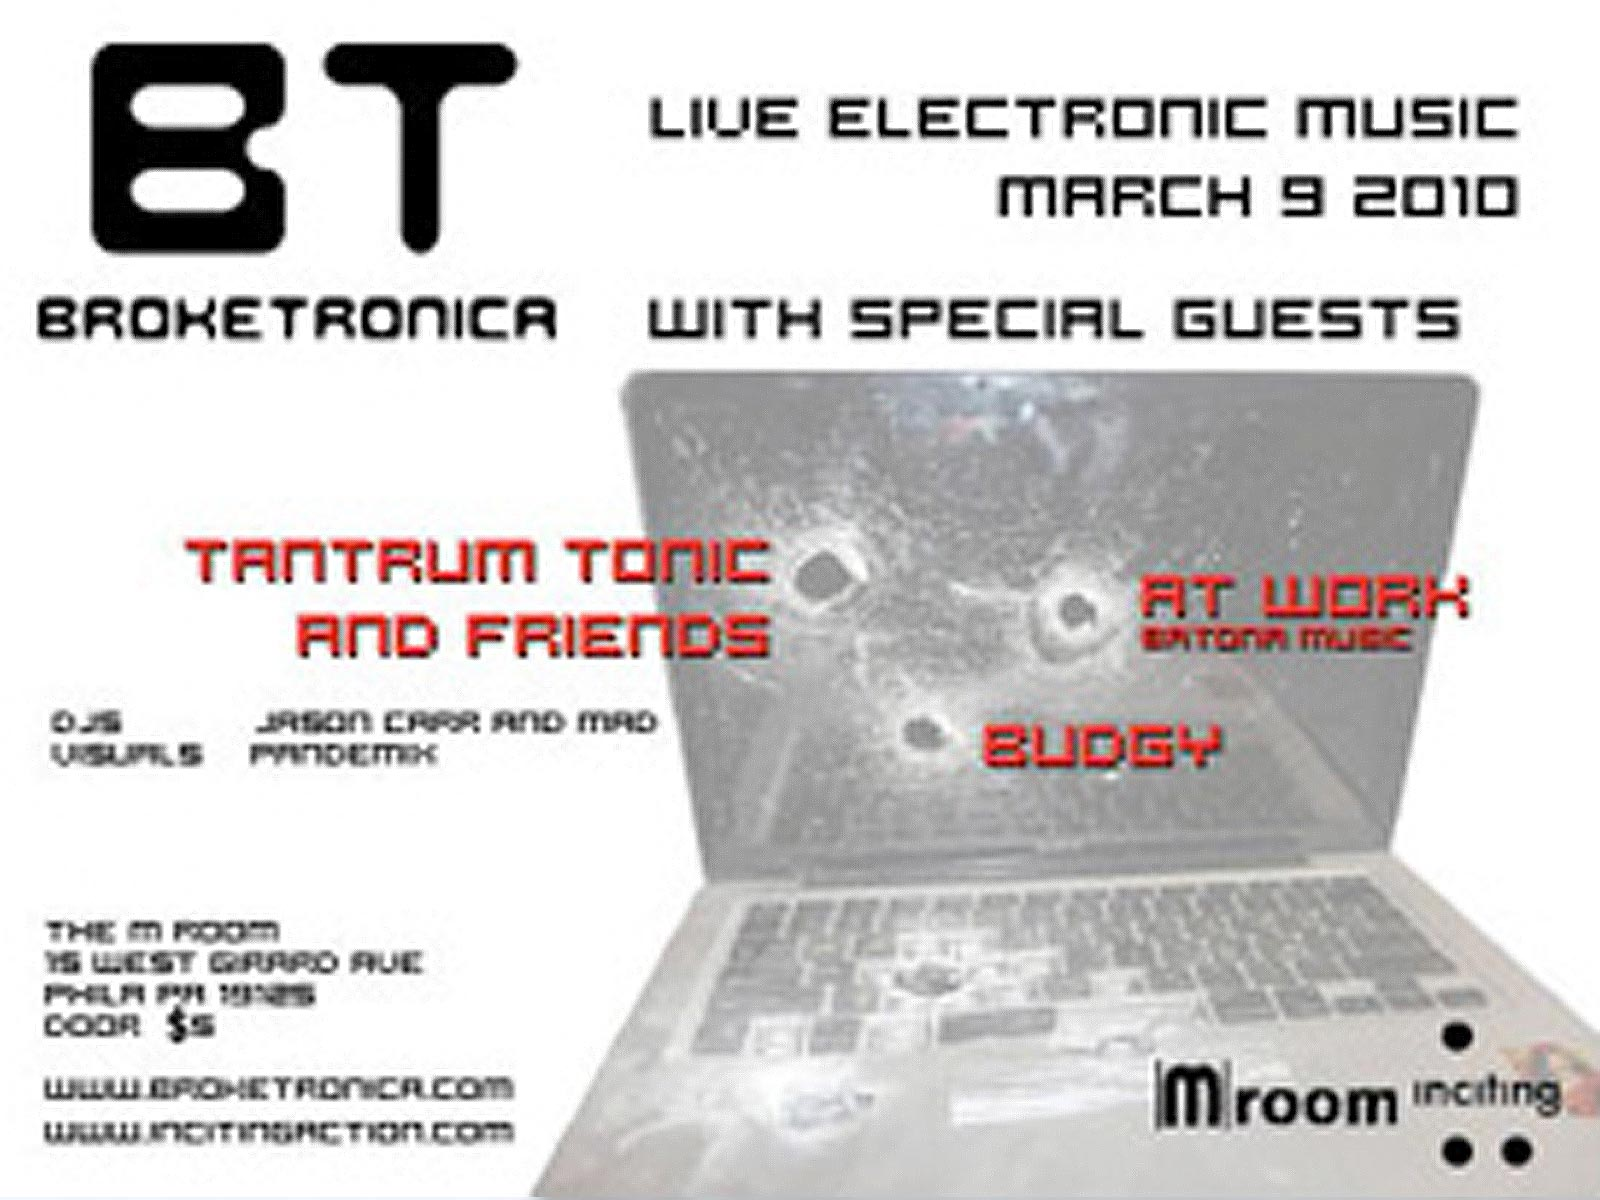 At Work Live at Broketronica